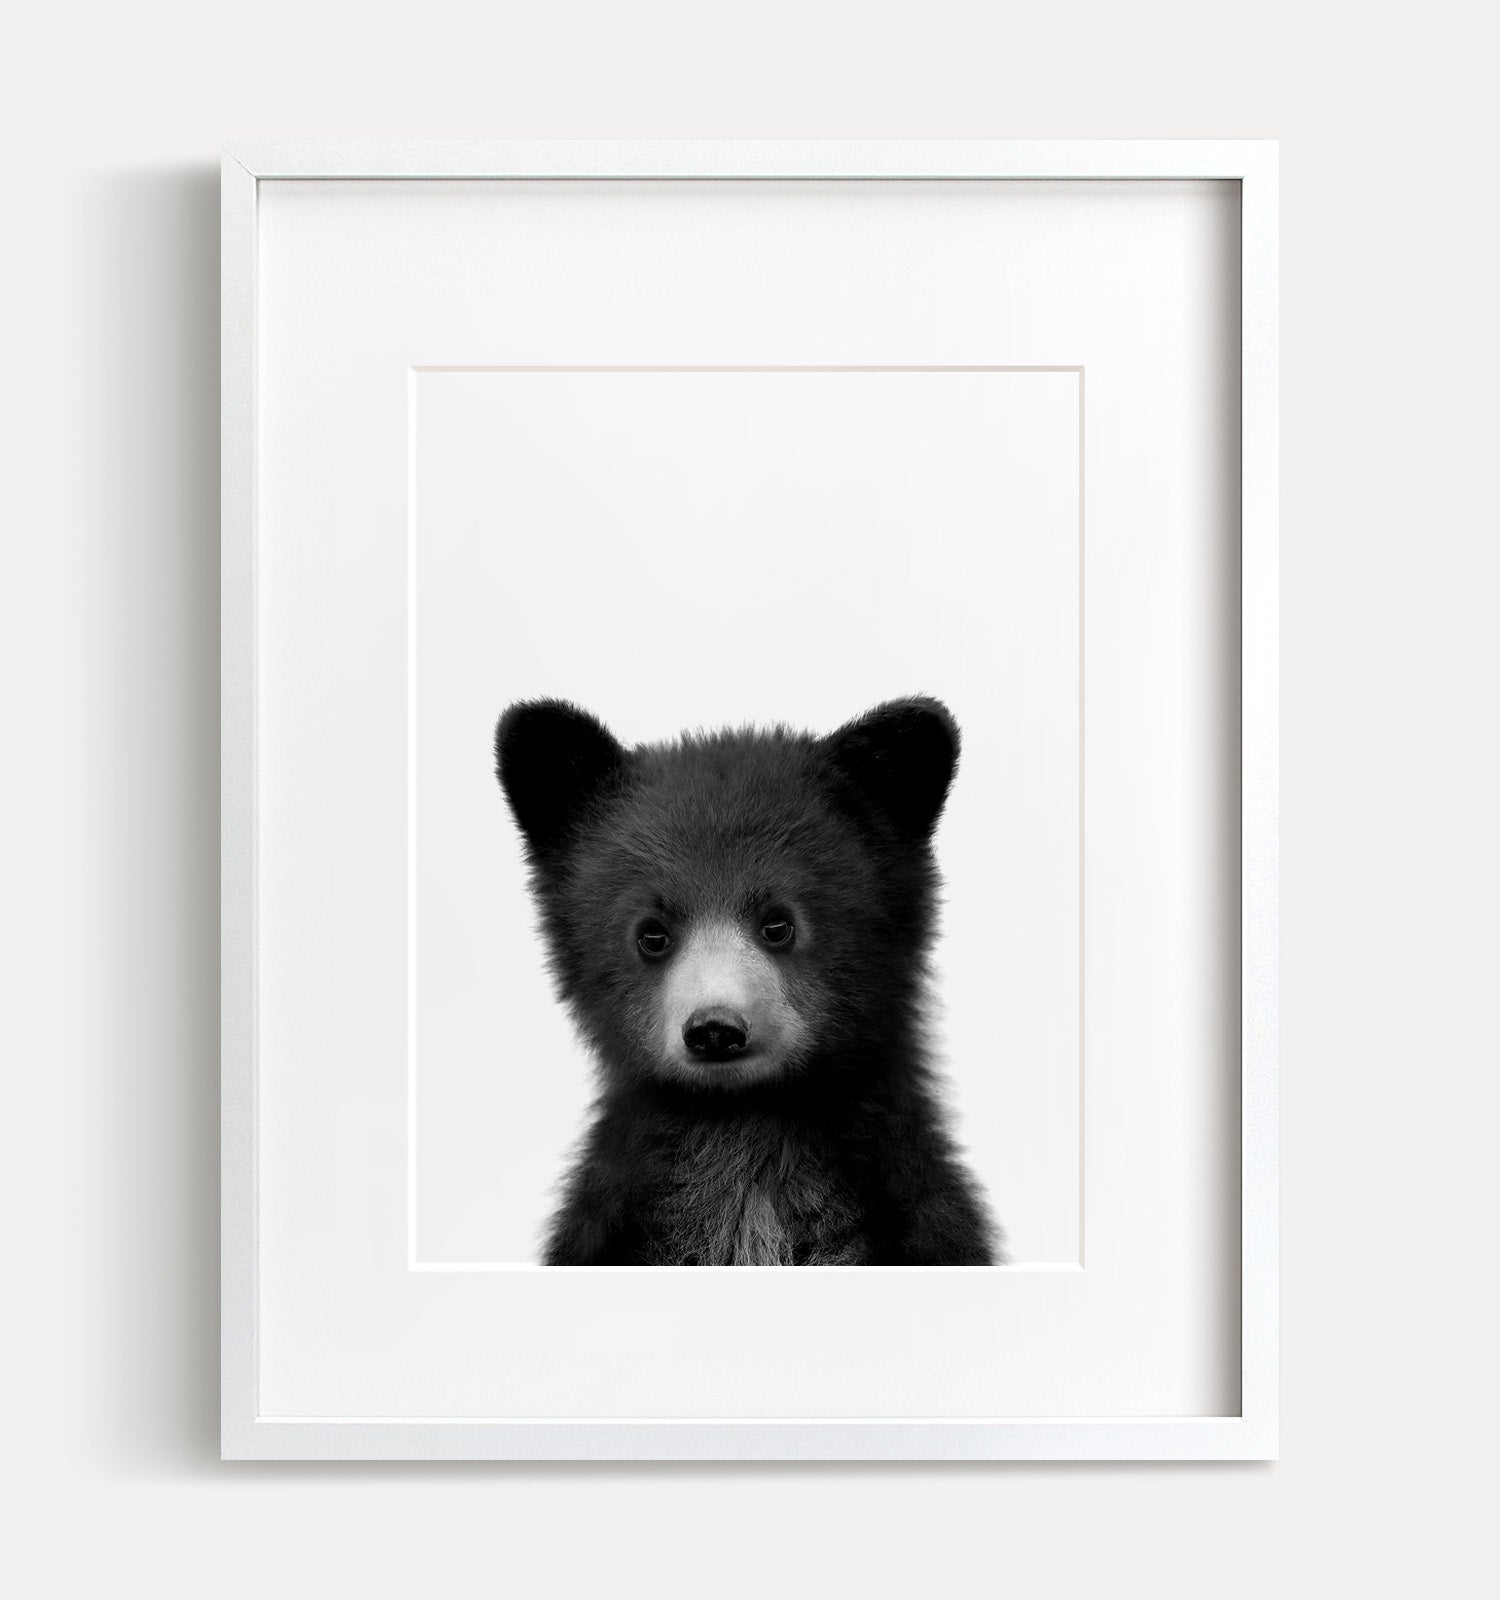 Baby Black Bear Print - Black and White - The Crown Prints